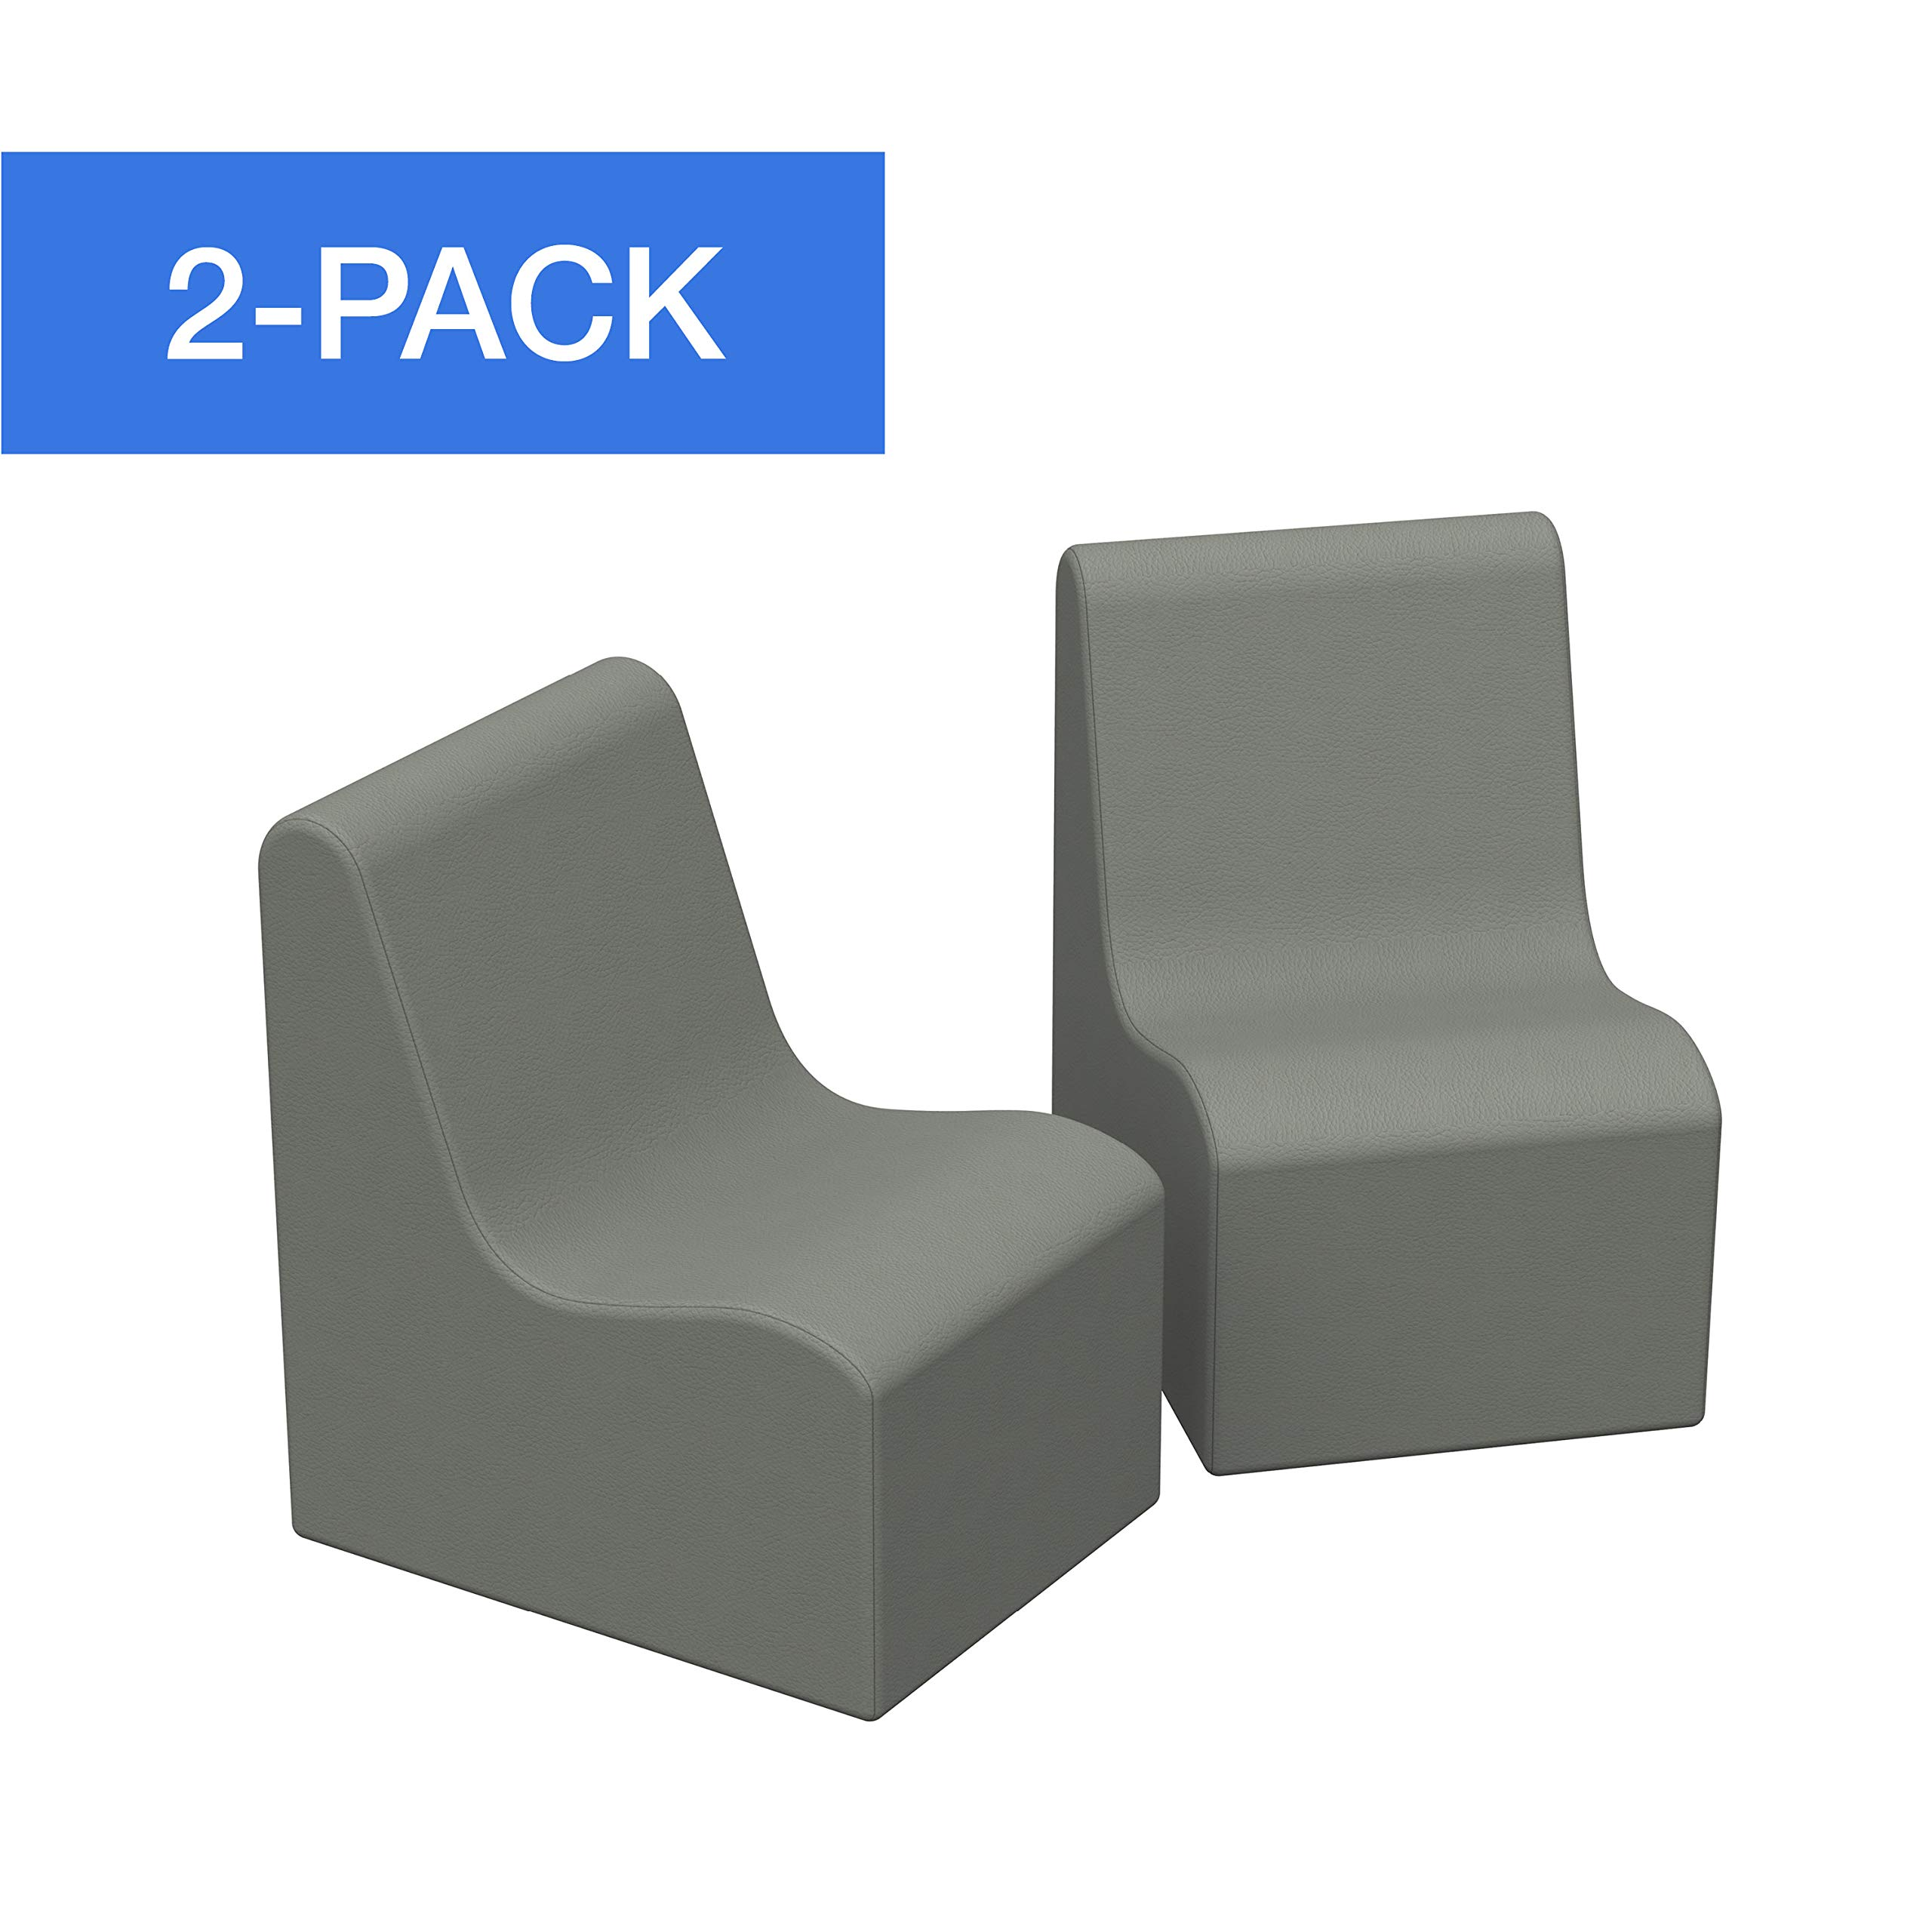 FDP SoftScape Wave Preschool Chair Seating Set, Play Soft Supportive Foam Furniture for Kids for Bedrooms, Playrooms, Classrooms - Gray (2-Pack) by Factory Direct Partners